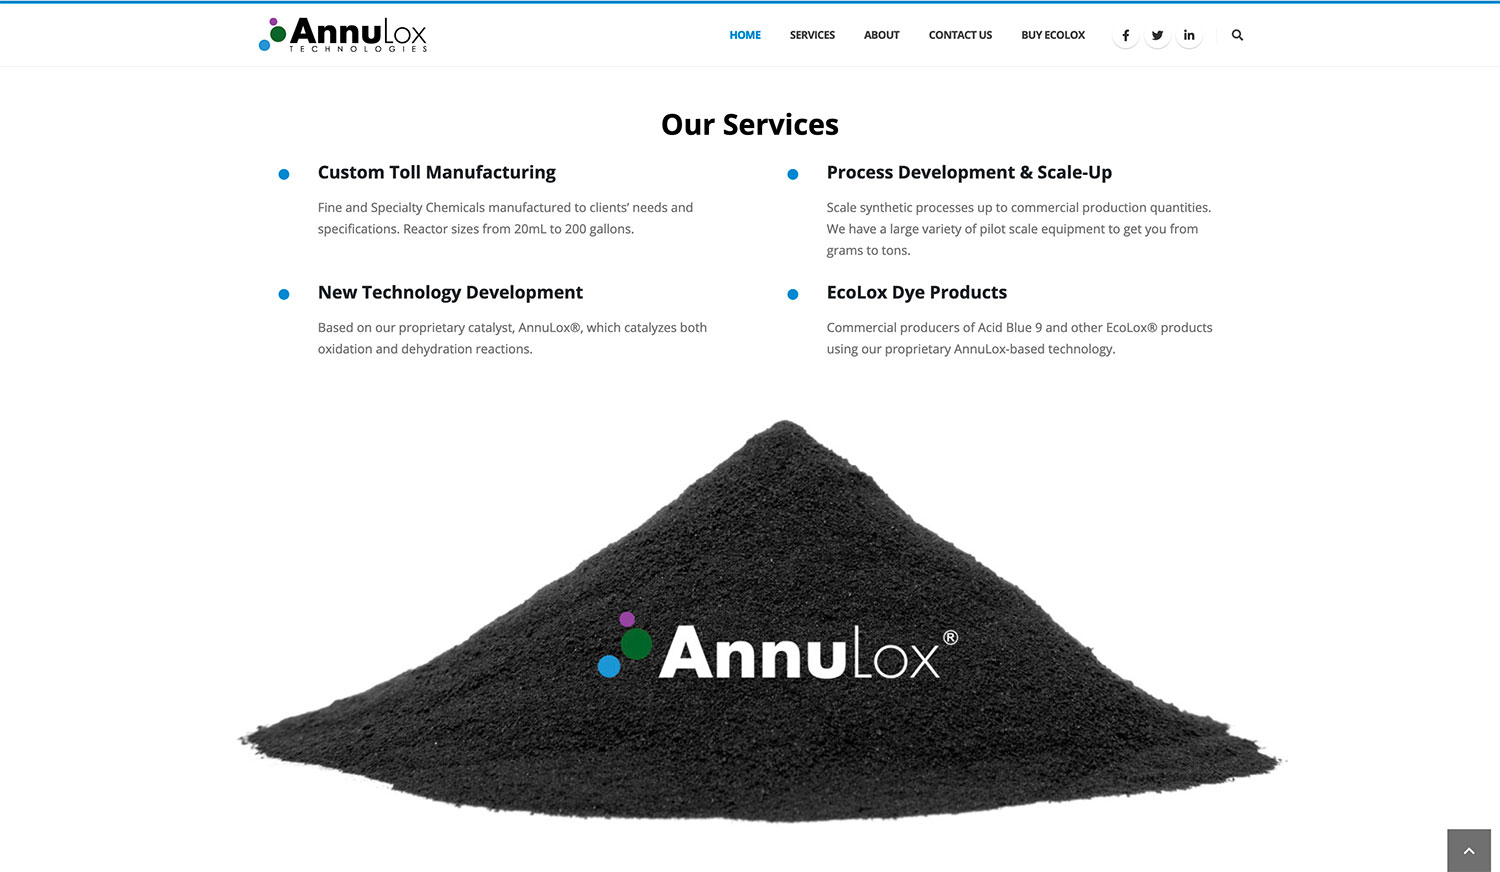 AnnuLox Technologies Services - Website Design